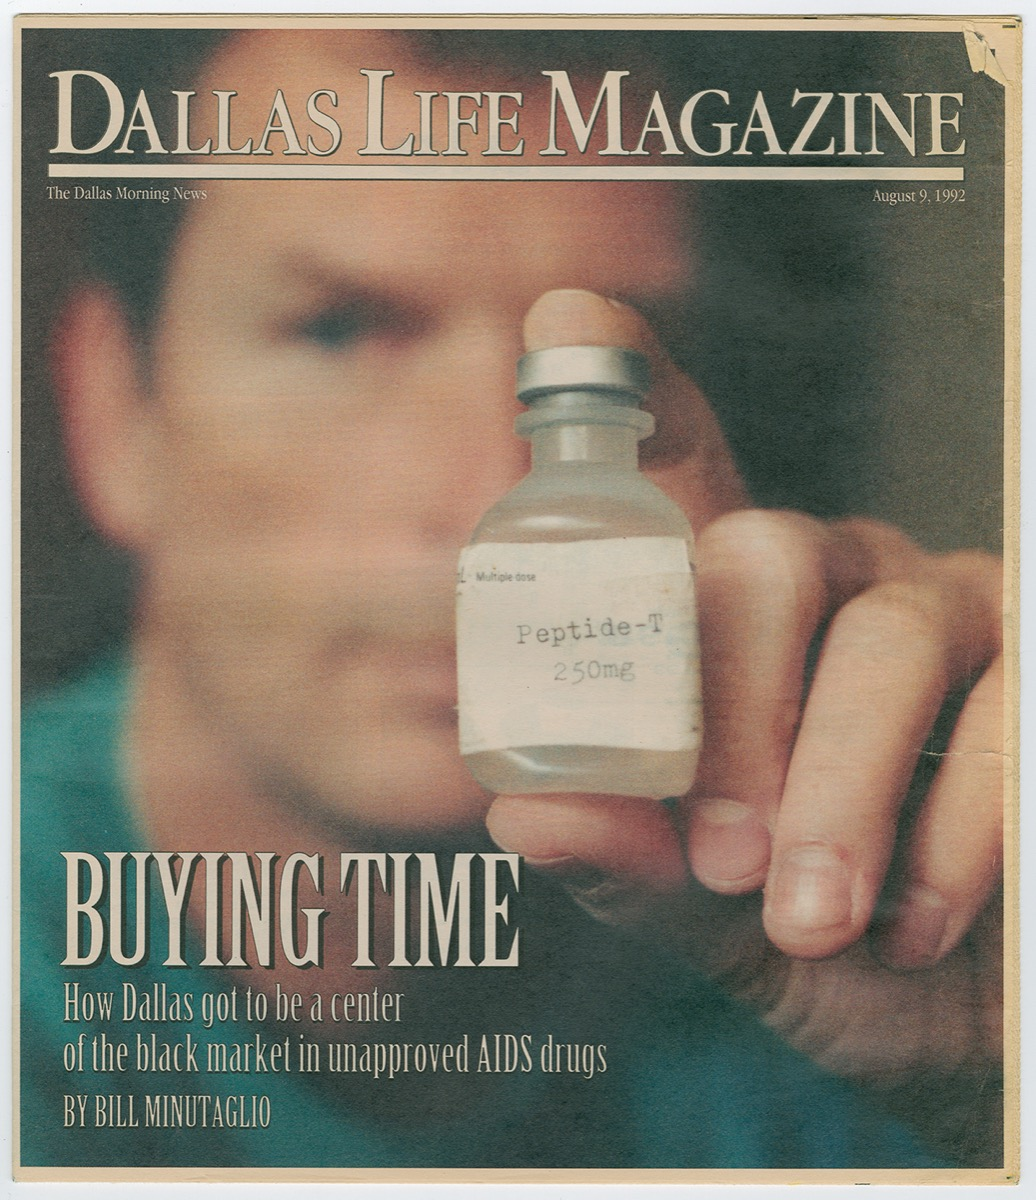 A magazine cover with a picture of a man in a blue shirt, holding a small viall in front of him labeled Peptide. The top of it is titled Dallas Life Magazine. The bottom says Buying Time.